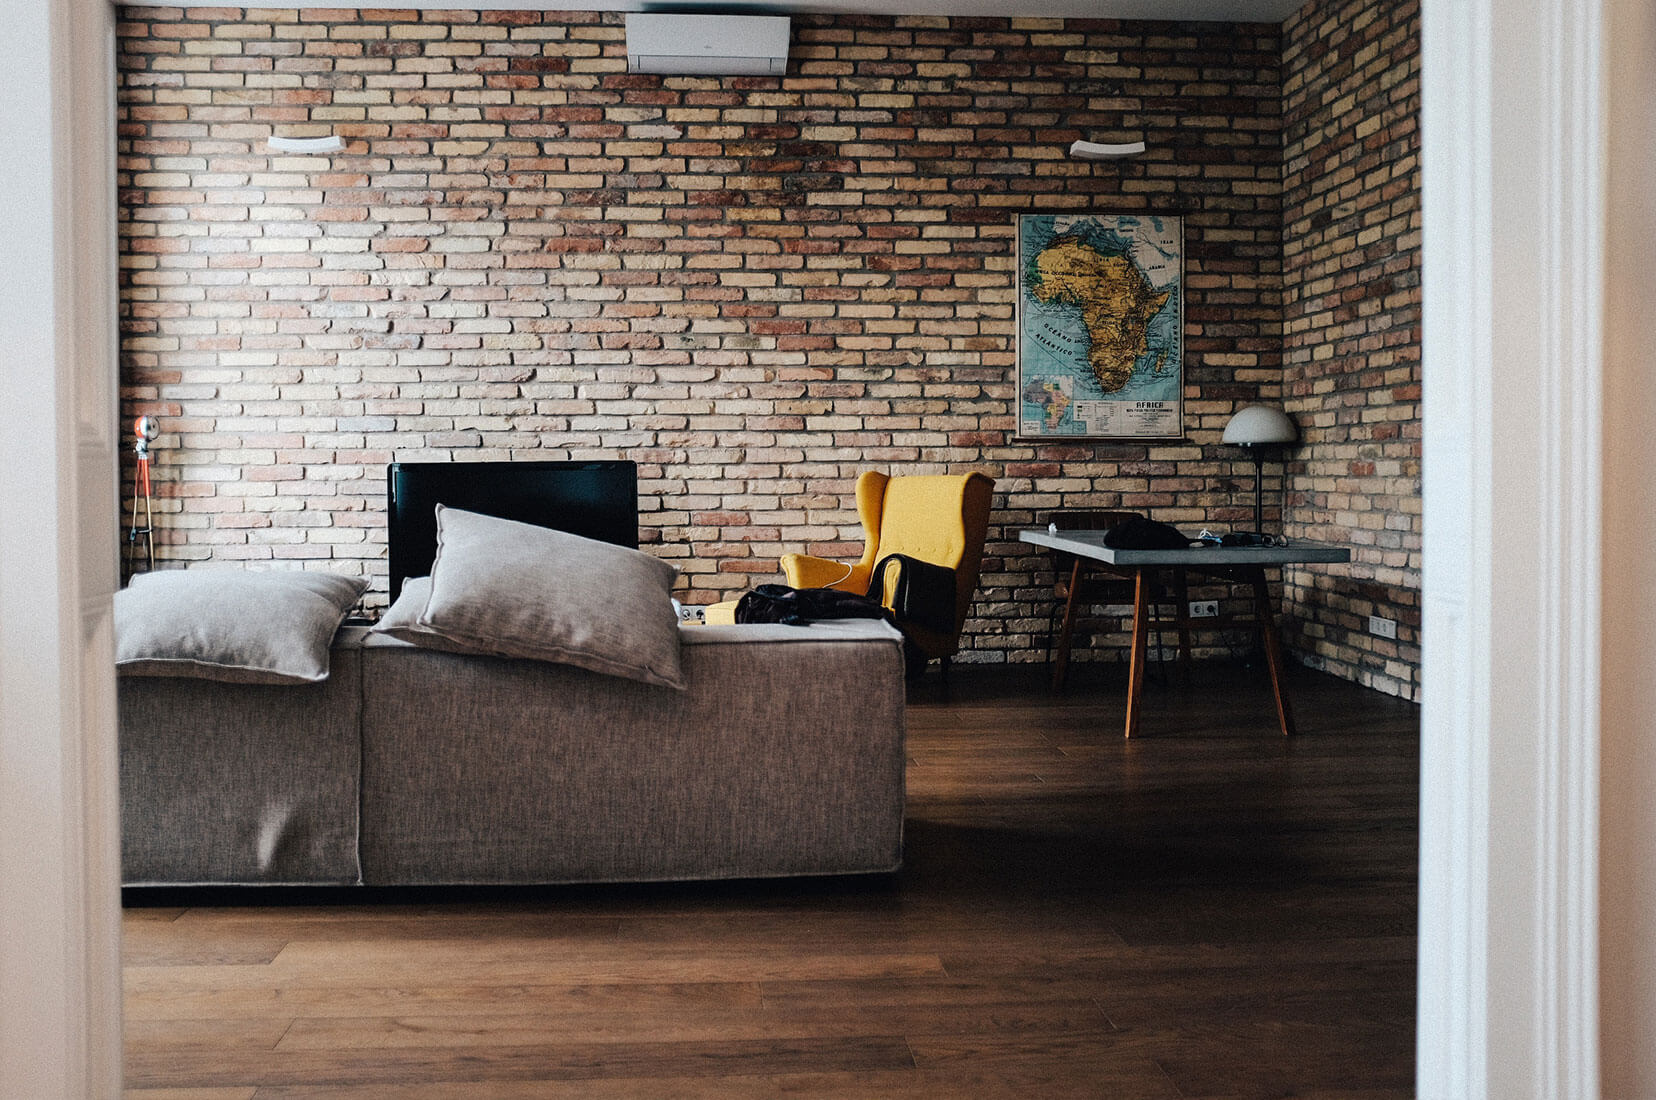 Architectural Design in living room open brick wall